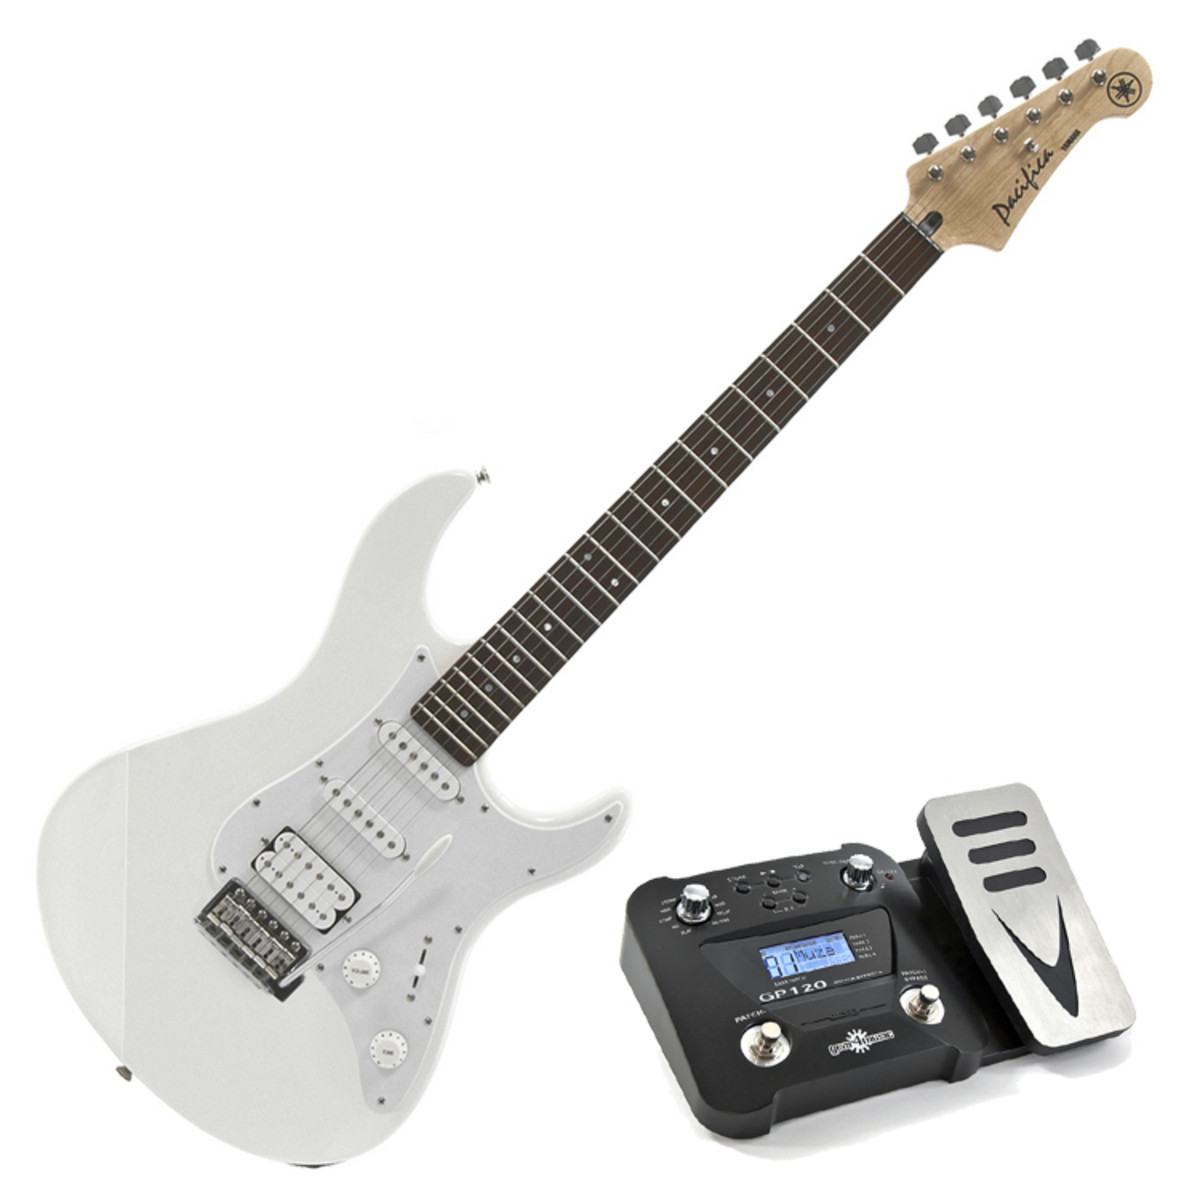 yamaha pacifica 012 electric guitar vintage white pedal pack at. Black Bedroom Furniture Sets. Home Design Ideas